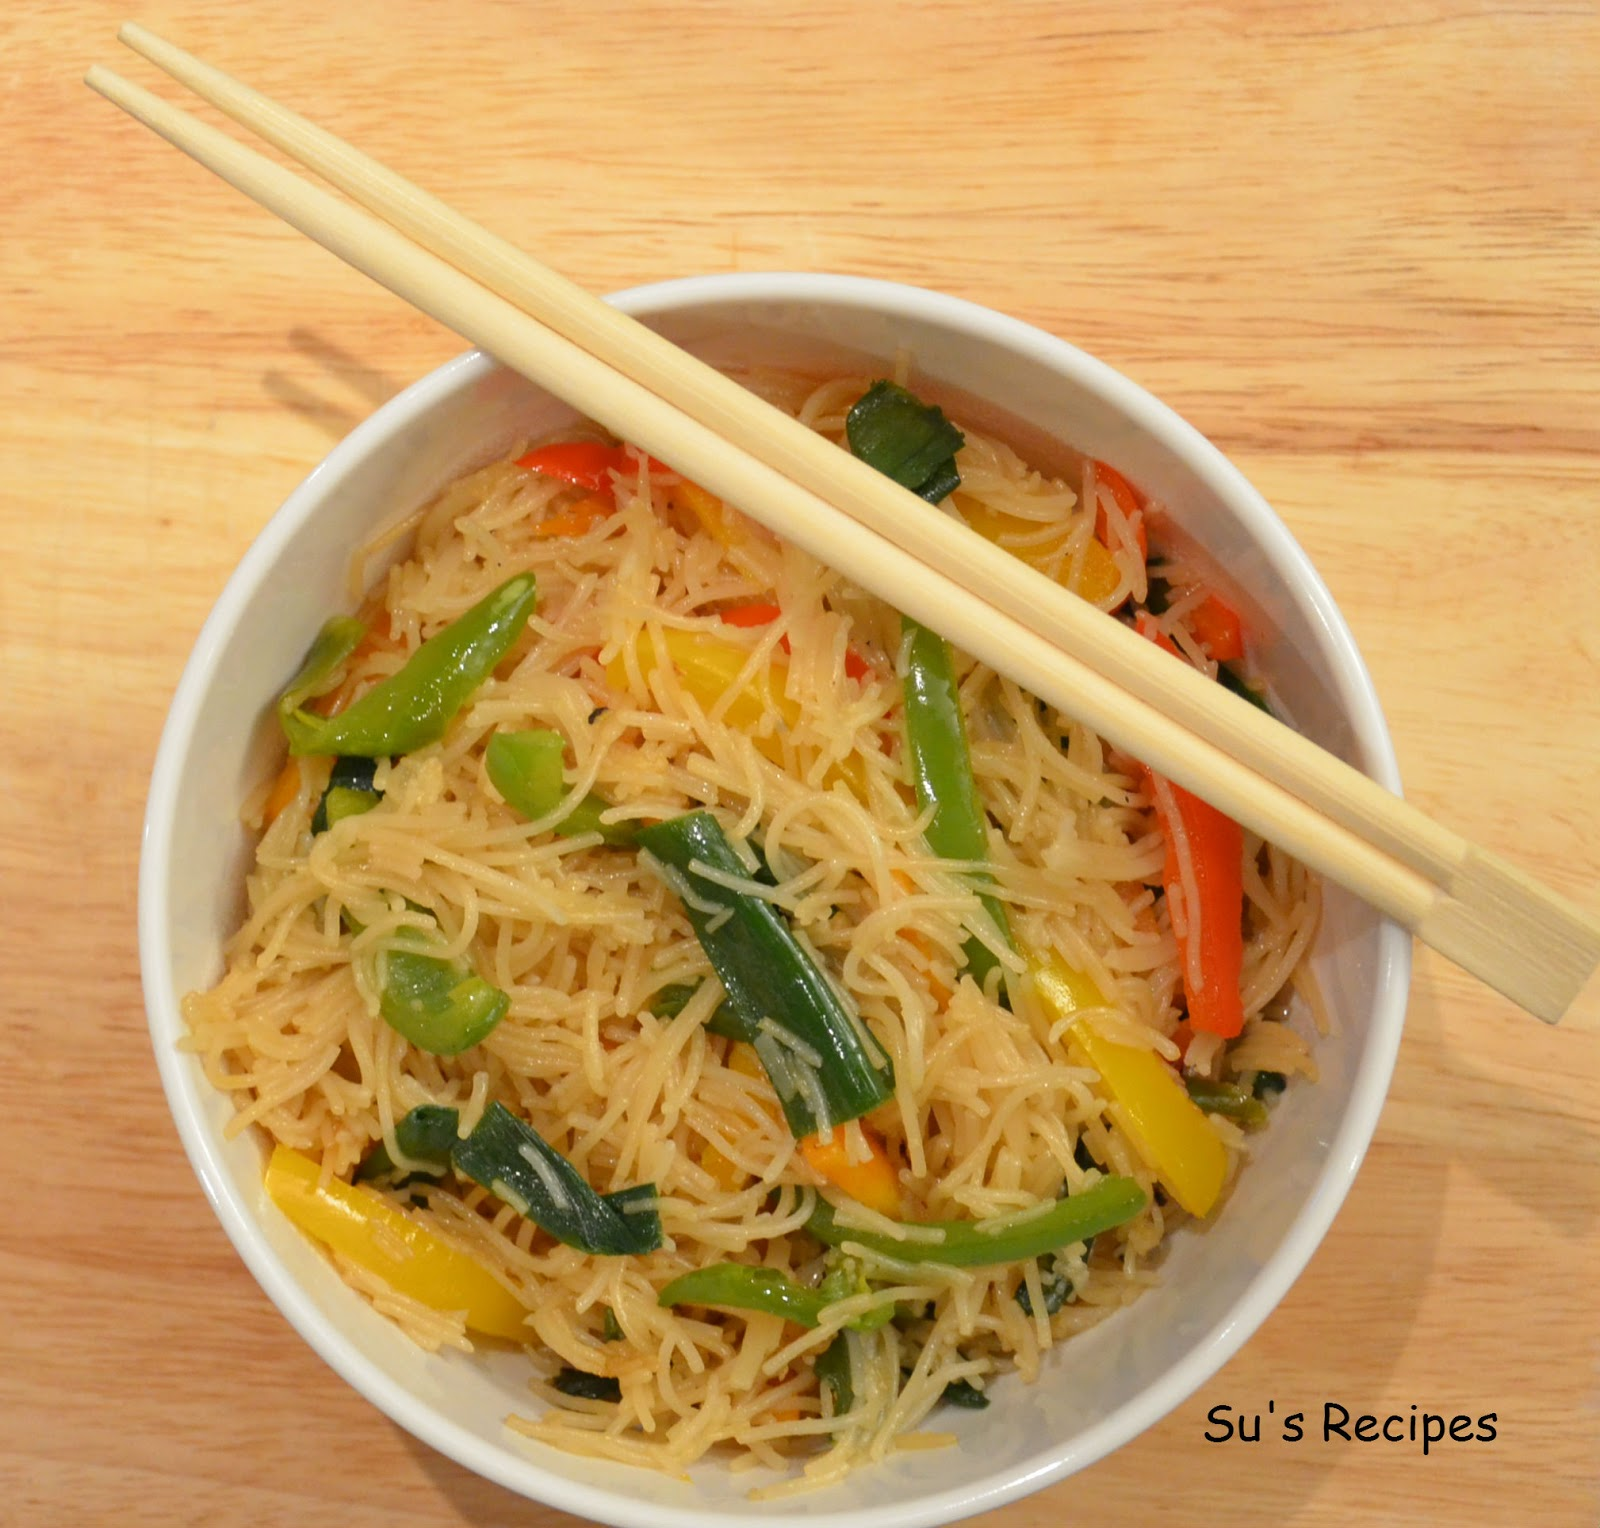 Su S Recipes Stir Fry Vegetable Rice Noodles